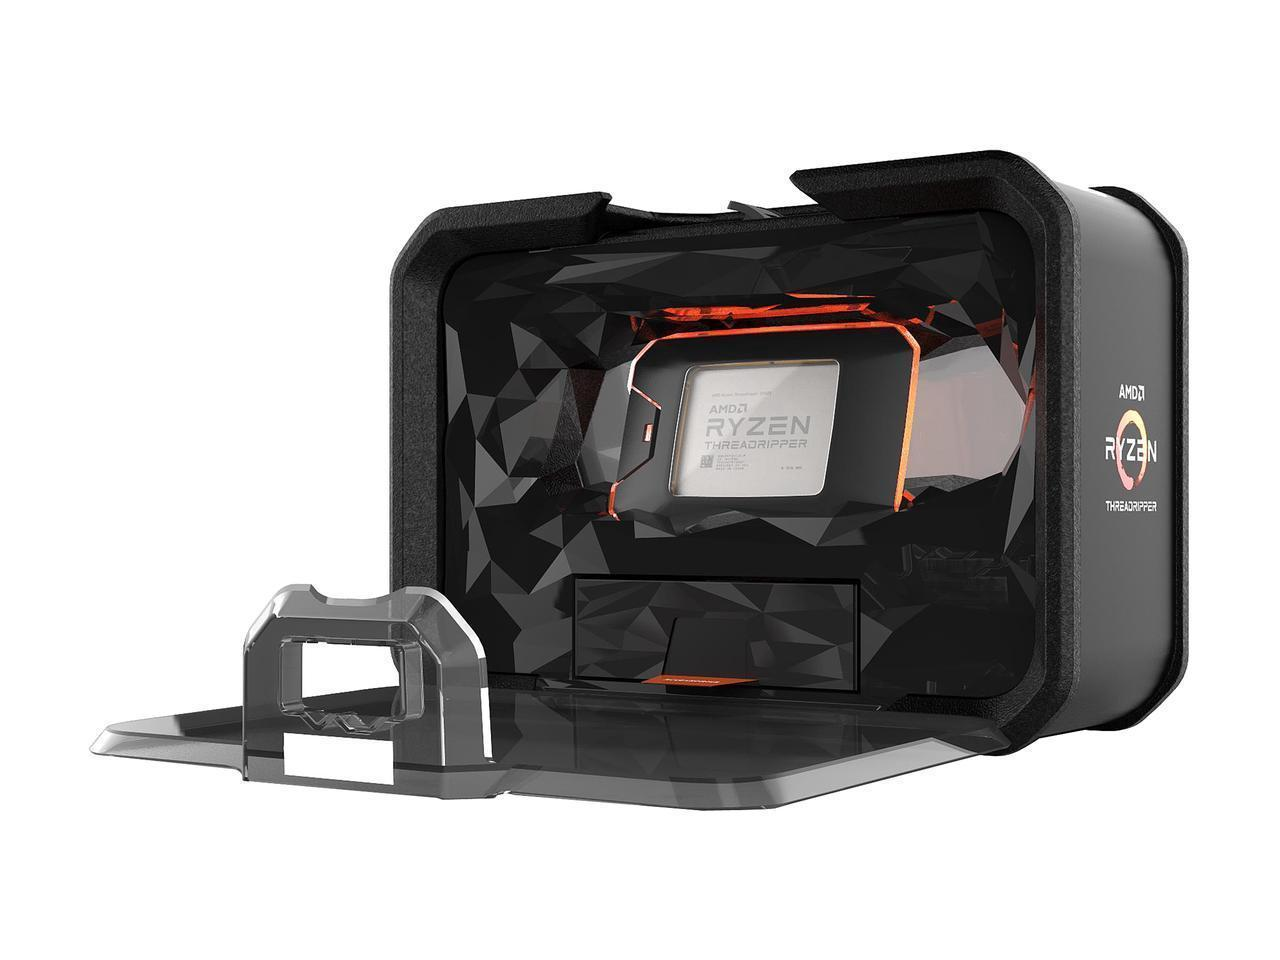 AMD Ryzen Threadripper 2990WX目前可預訂,價格為1,799美元 - XFastest - AMD-Ryzen-Threadripper-2990WX_3.jpg